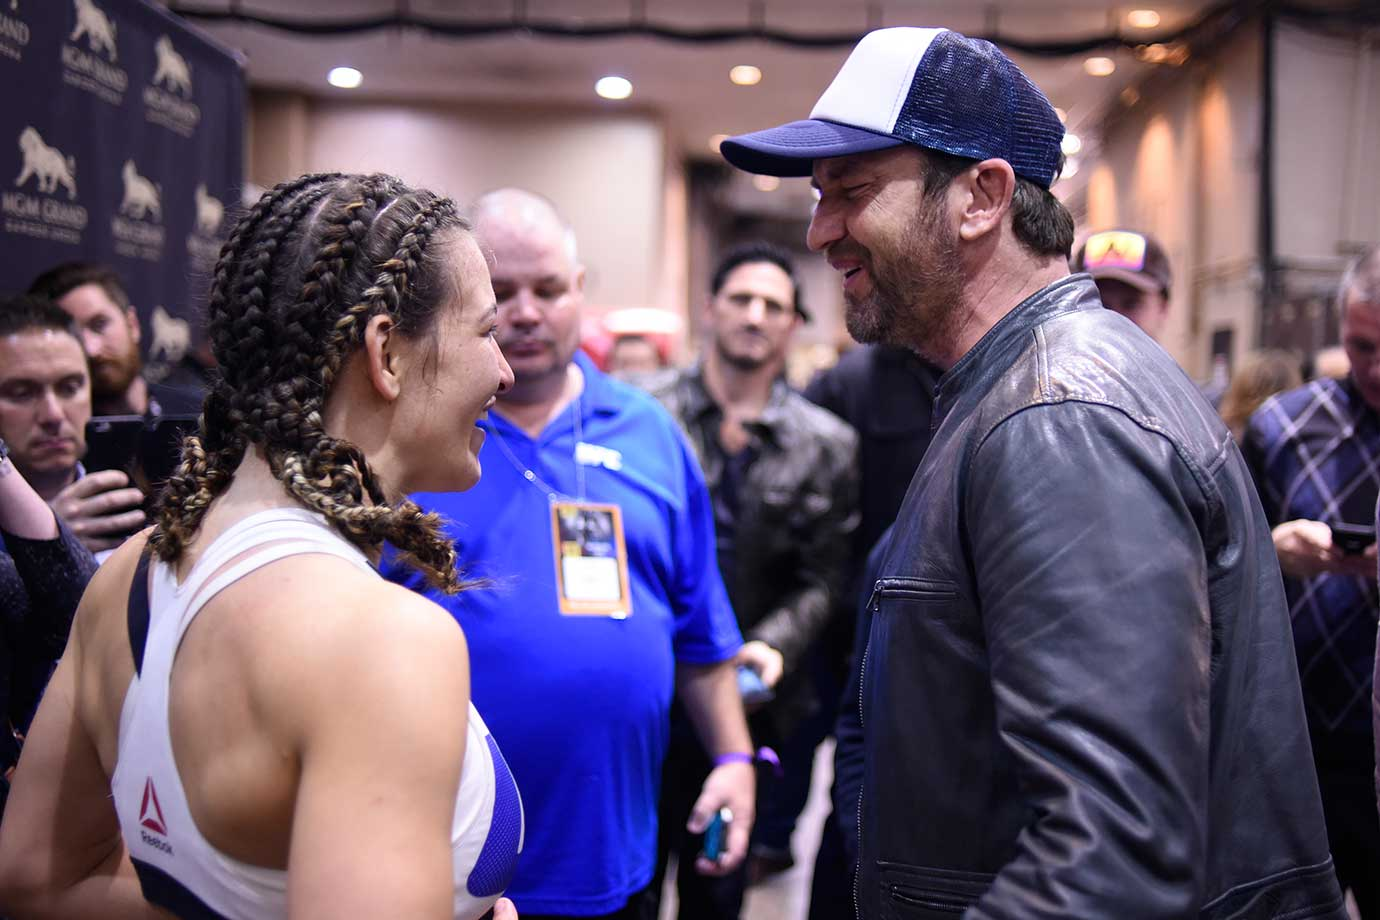 Miesha Tate and actor Gerard Butler, the star of London Has Fallen, chat backstage at UFC 196 in Las Vegas.